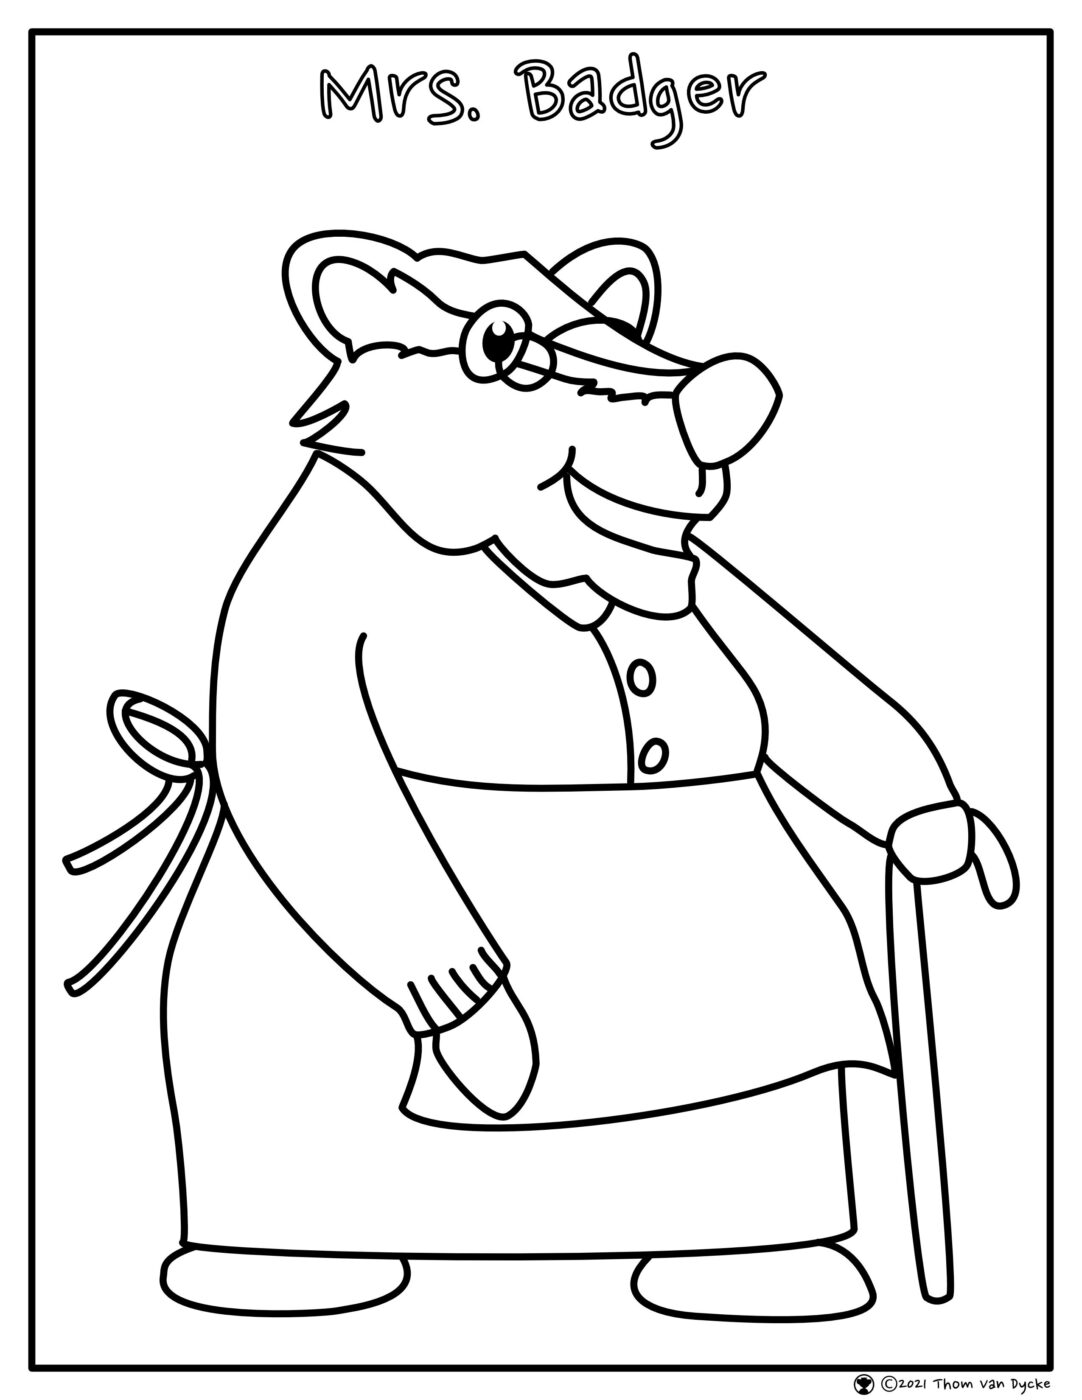 Mrs. Badger Colouring Page scaled